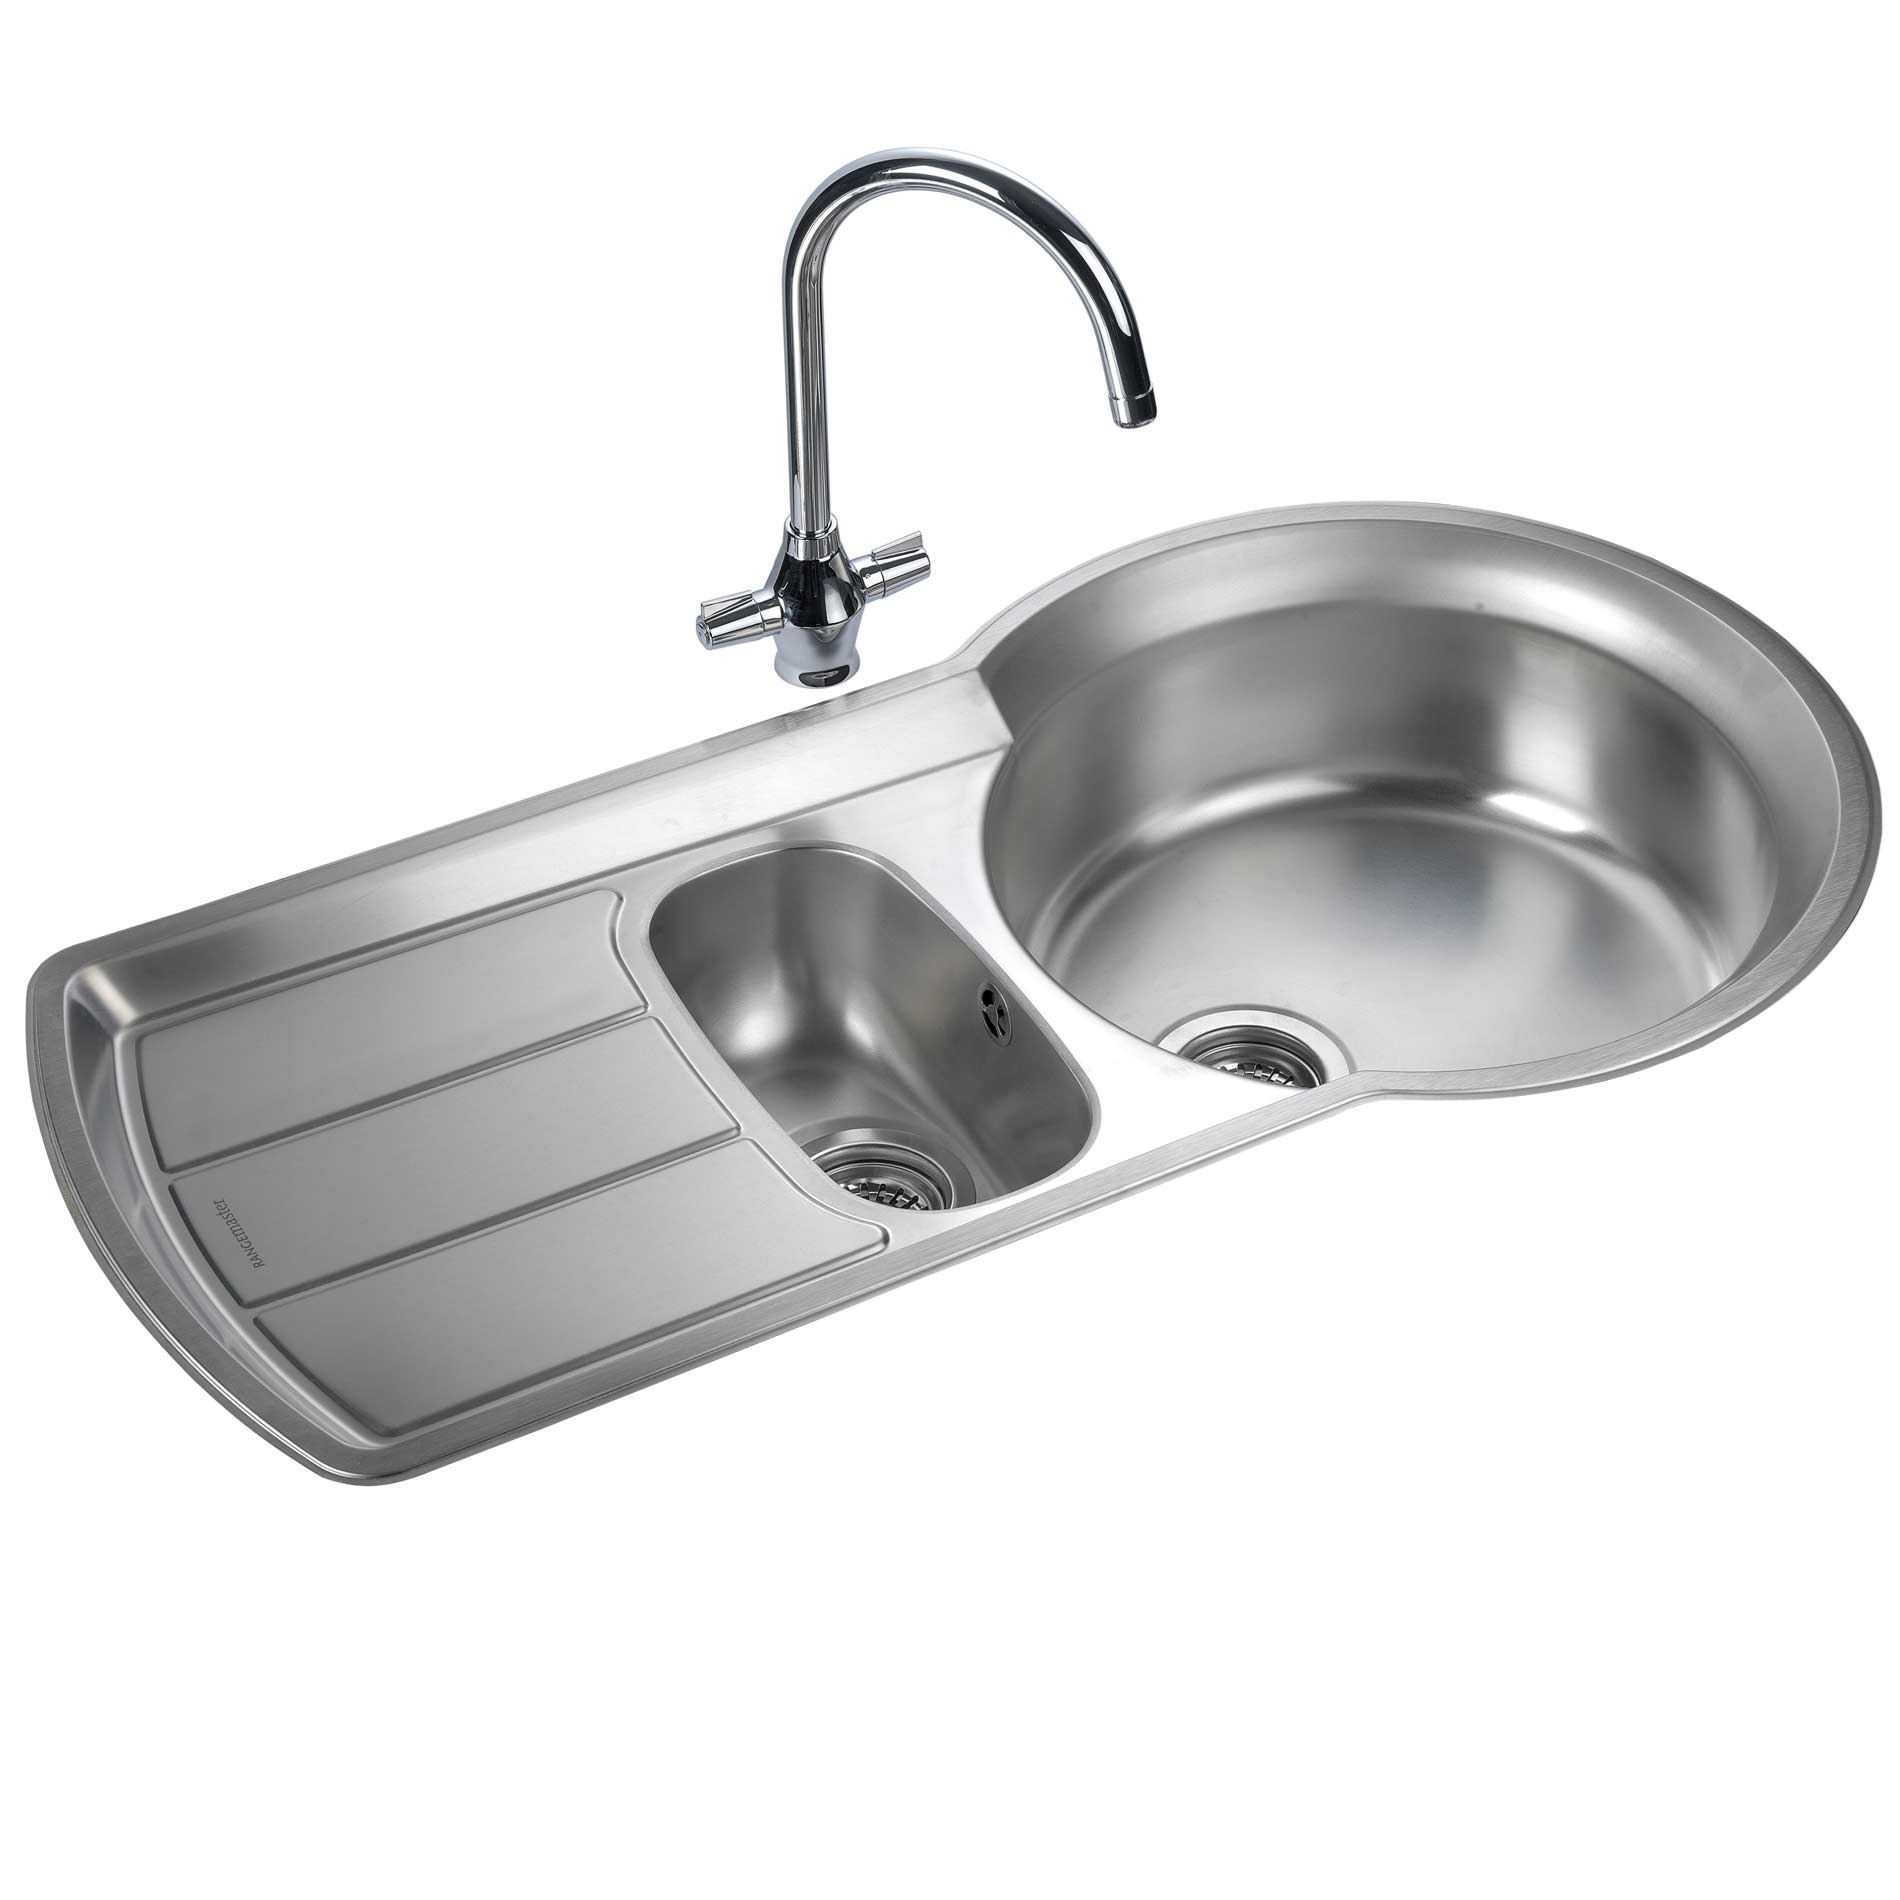 Picture of Keyhole KY10002 Stainless Steel Sink